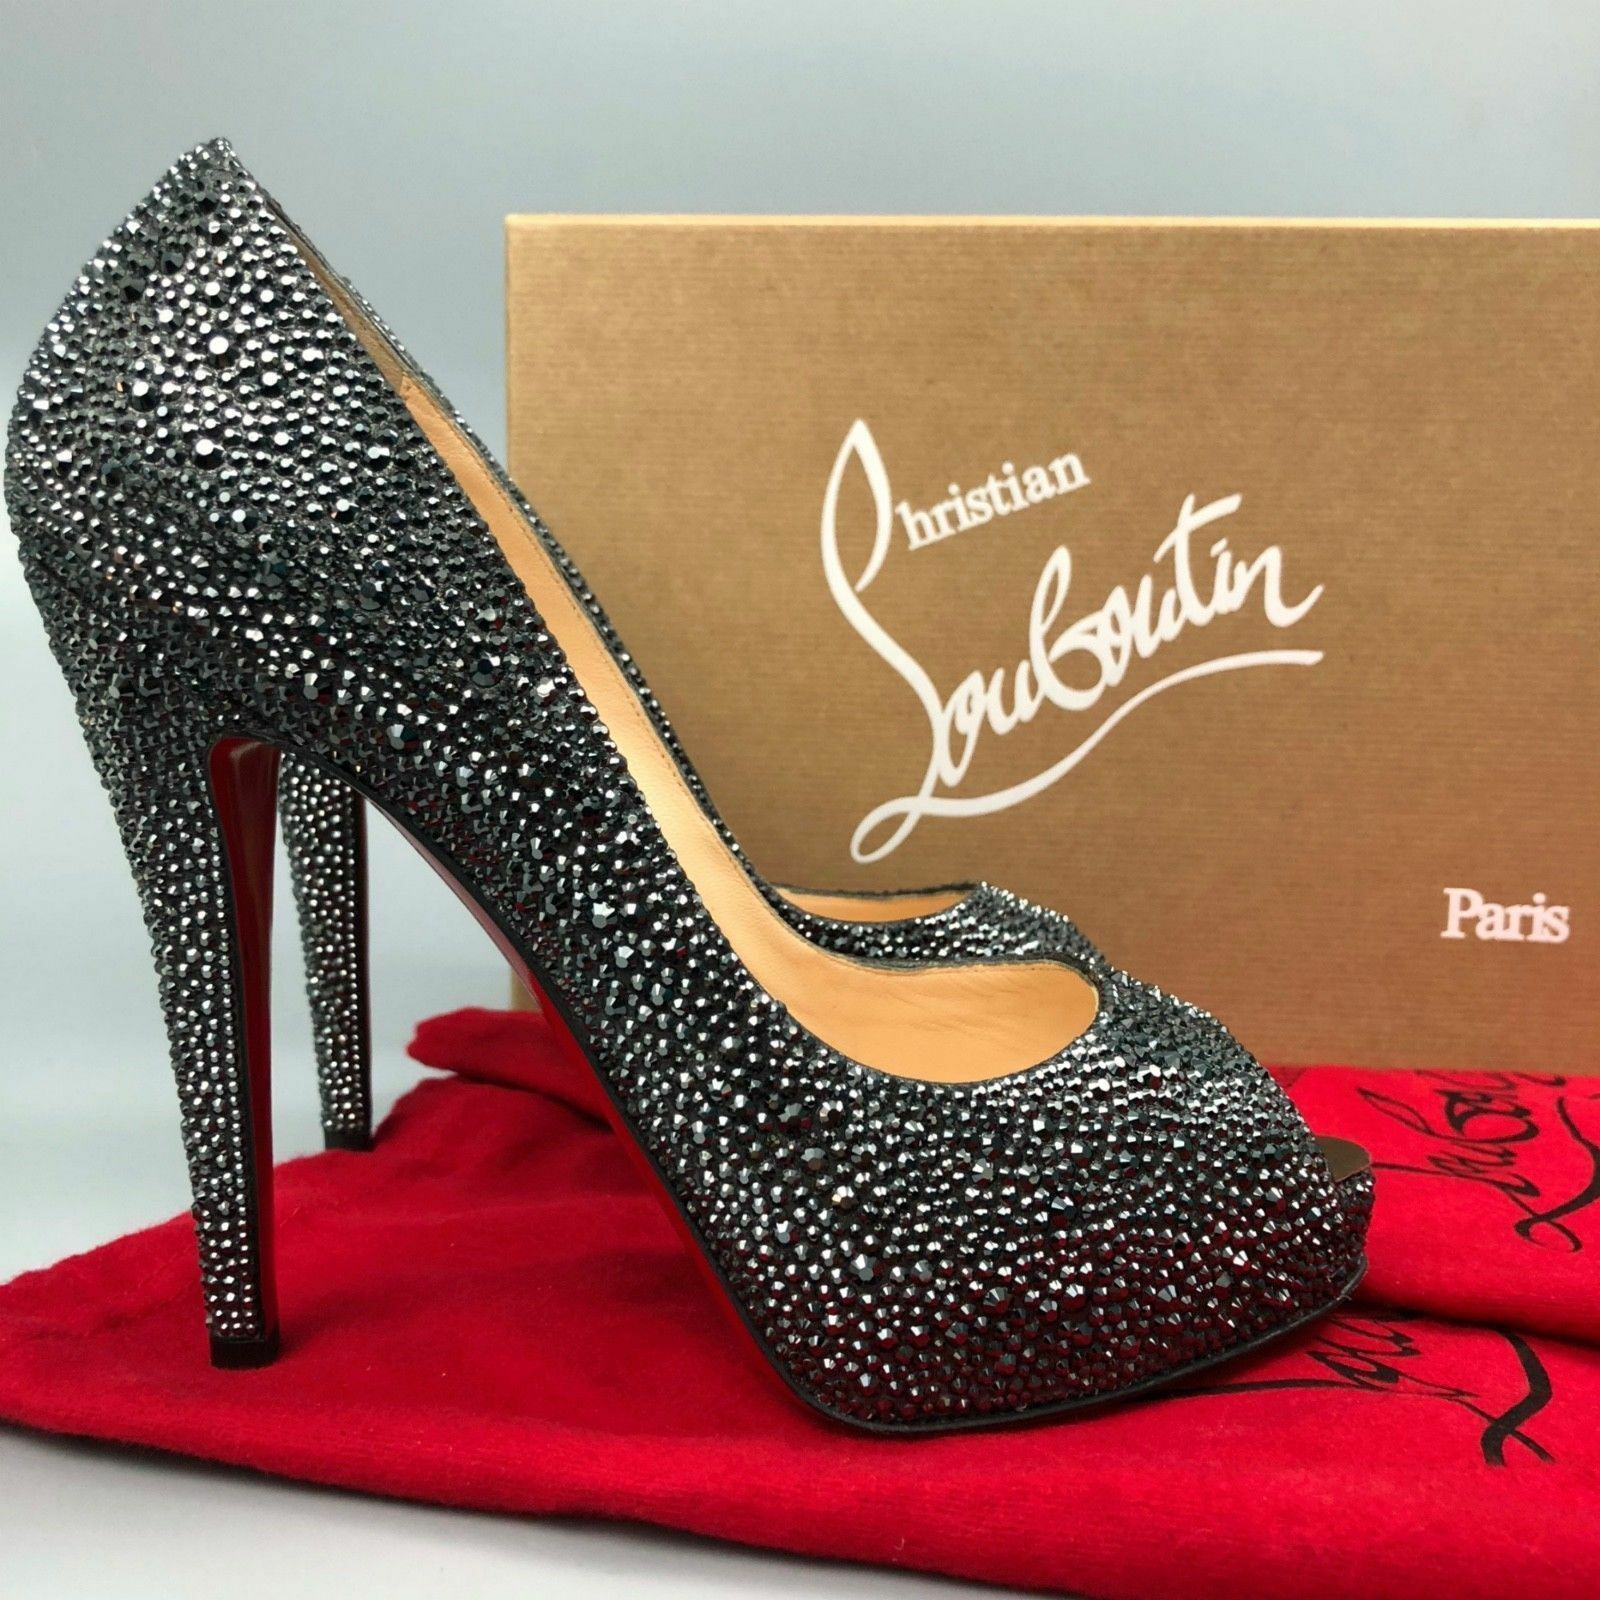 3300 NEW Christian Louboutin Very Riche 120 Strass Crystal High Heel shoes 39.5